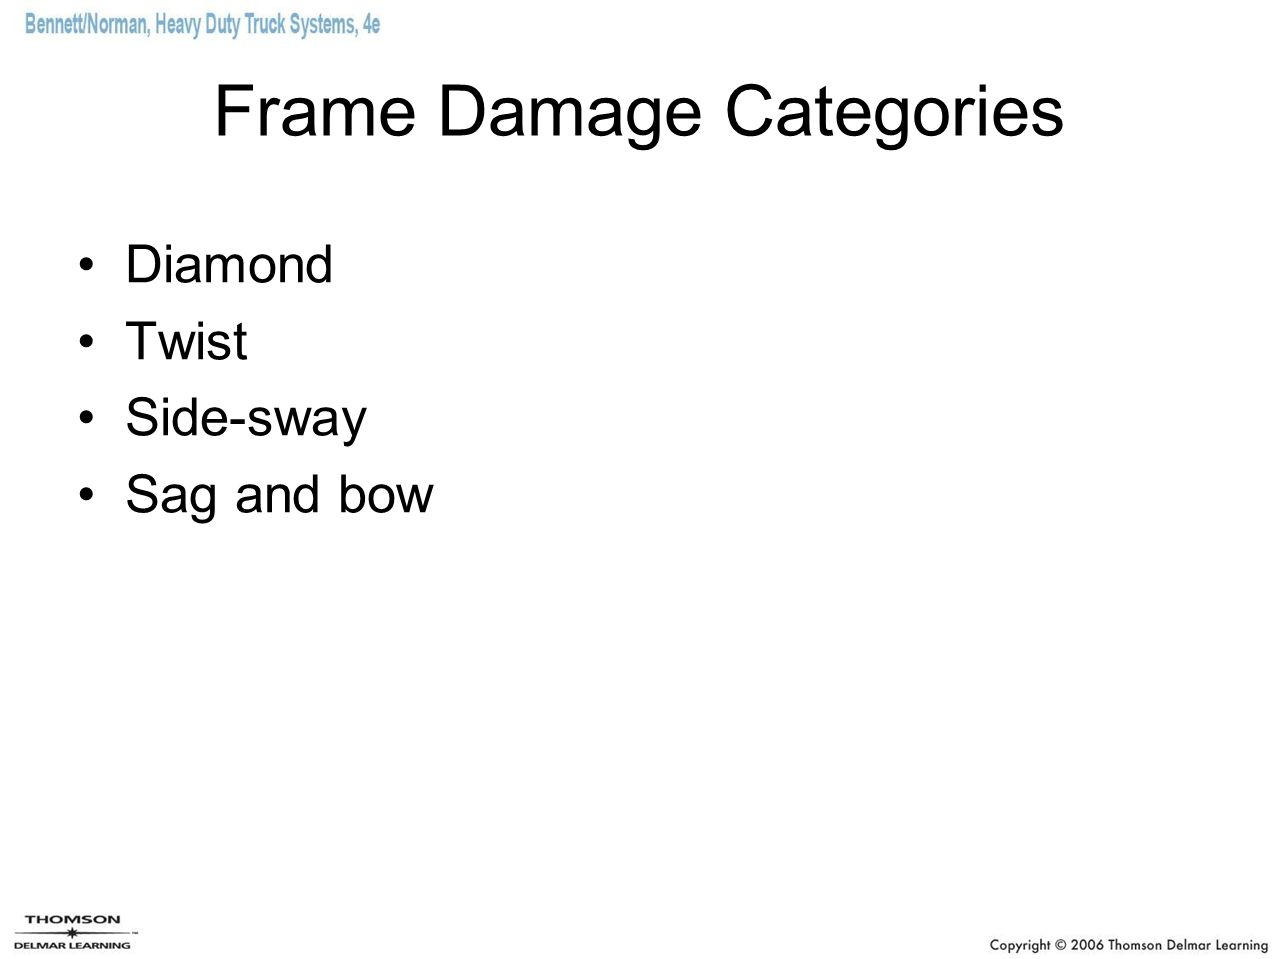 Frame Damage Categories